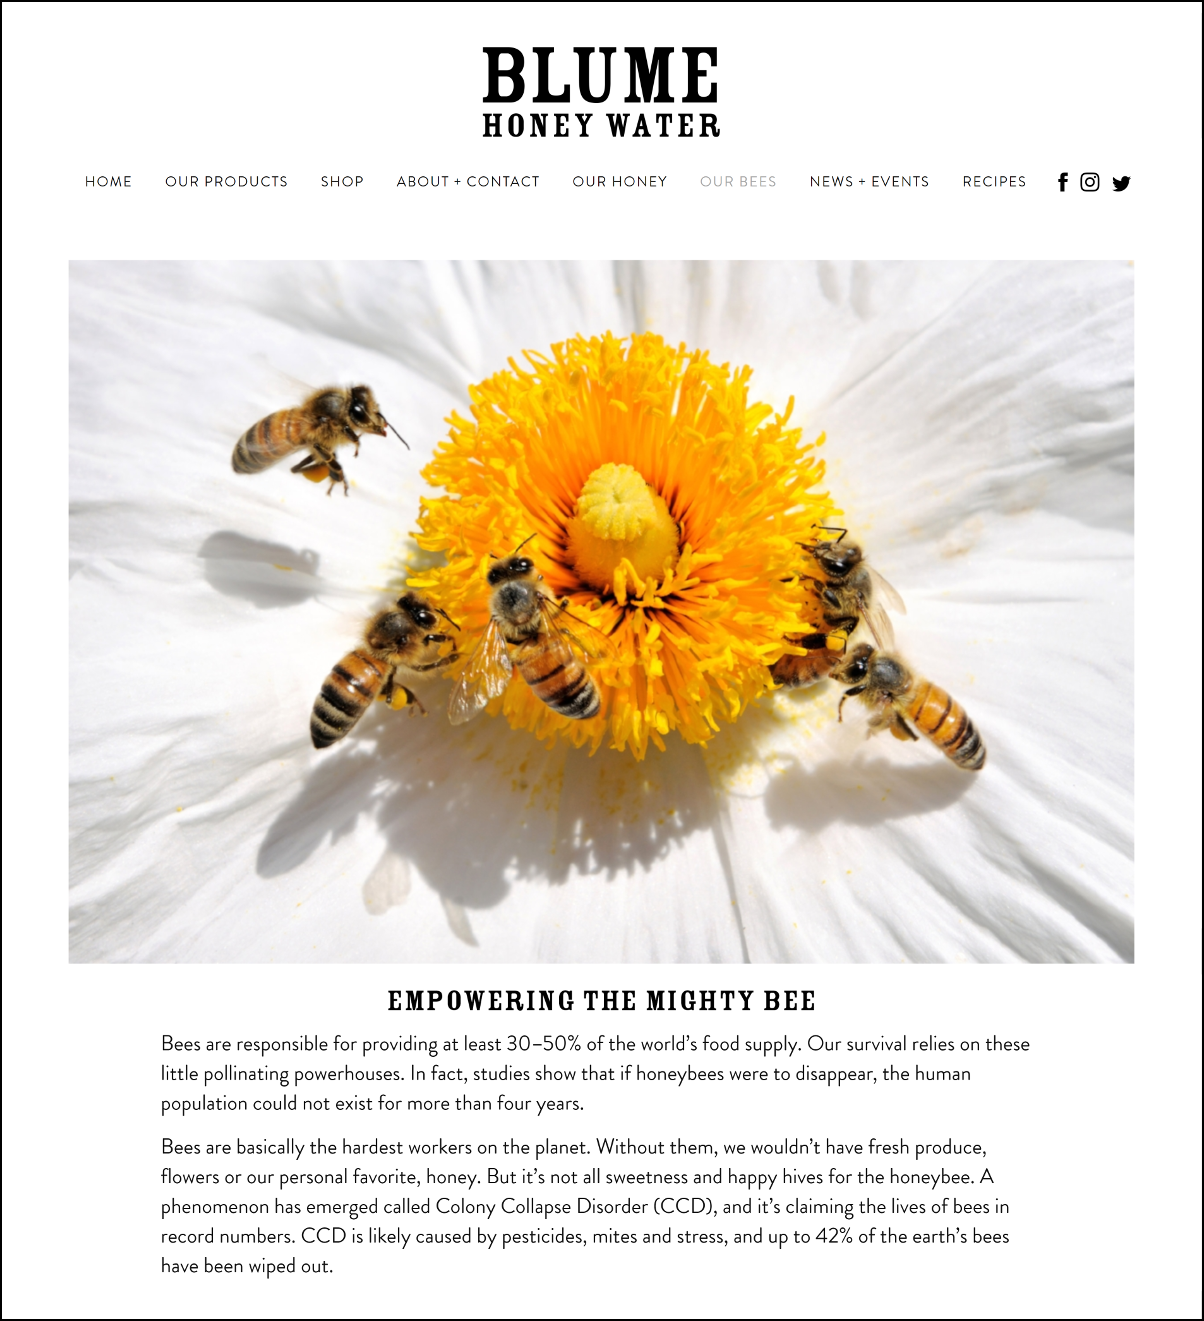 Blume_Screen_shot_bees_2_pxl_border.png